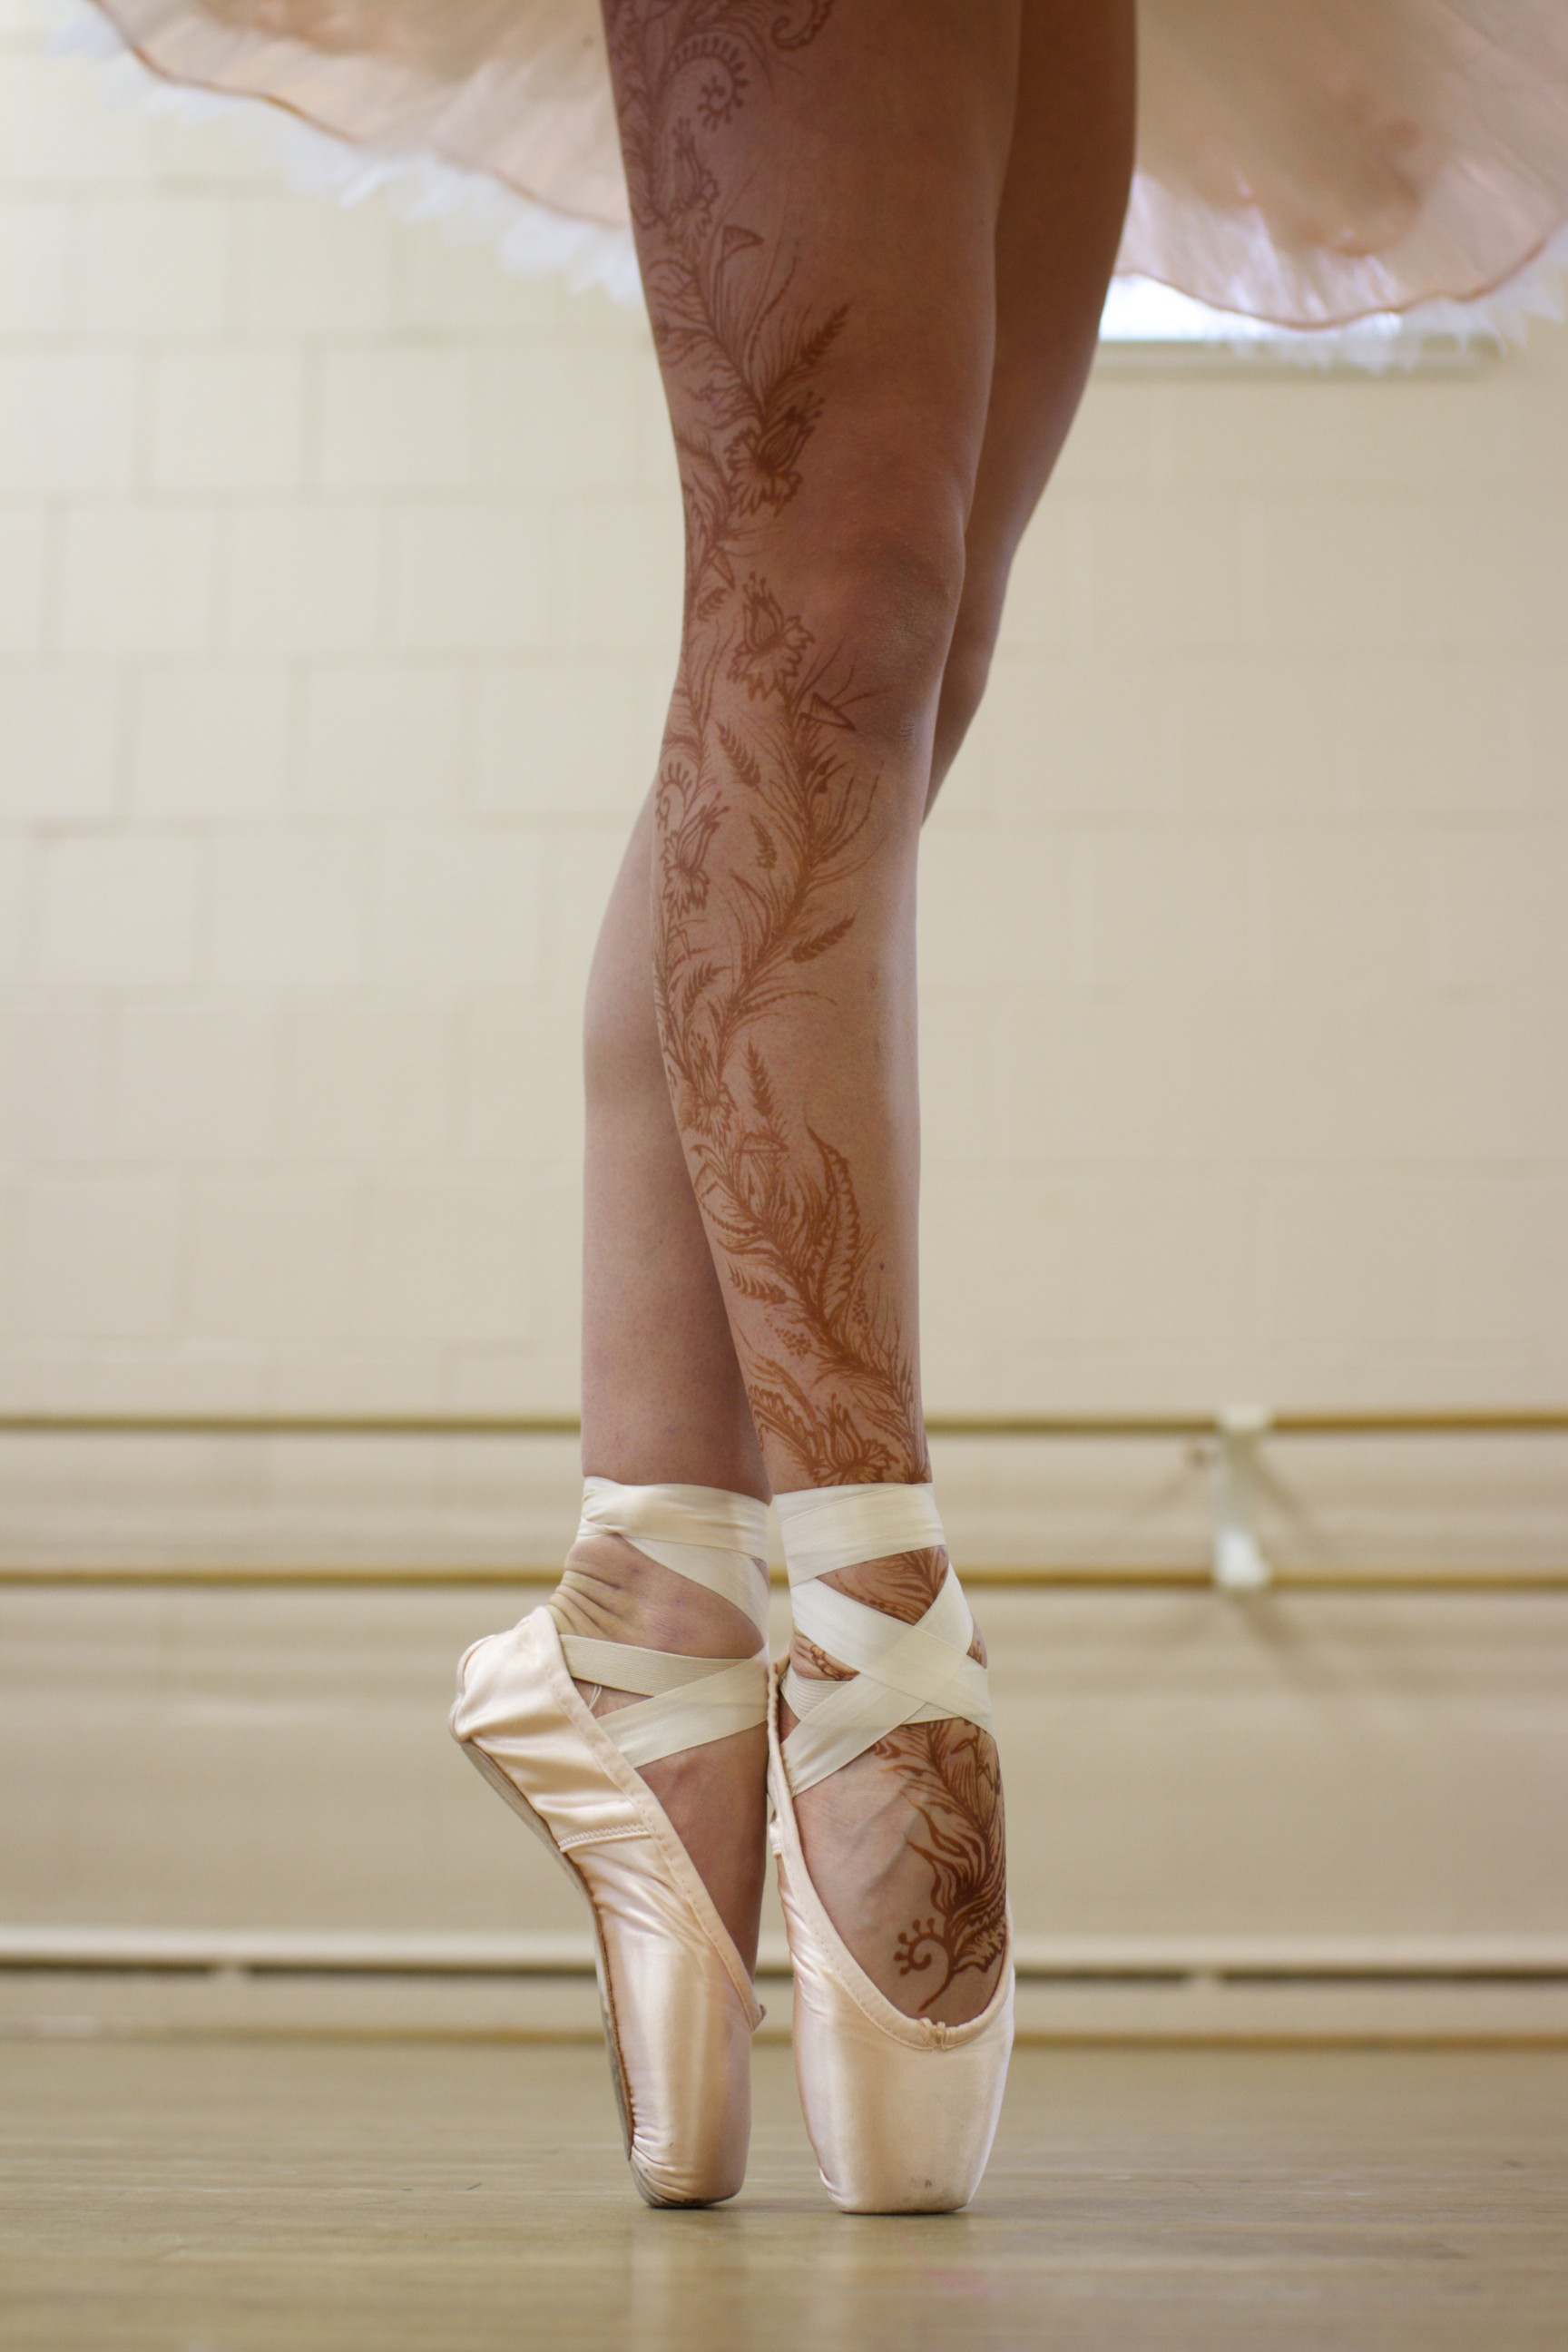 Henna on the leg of a ballerina